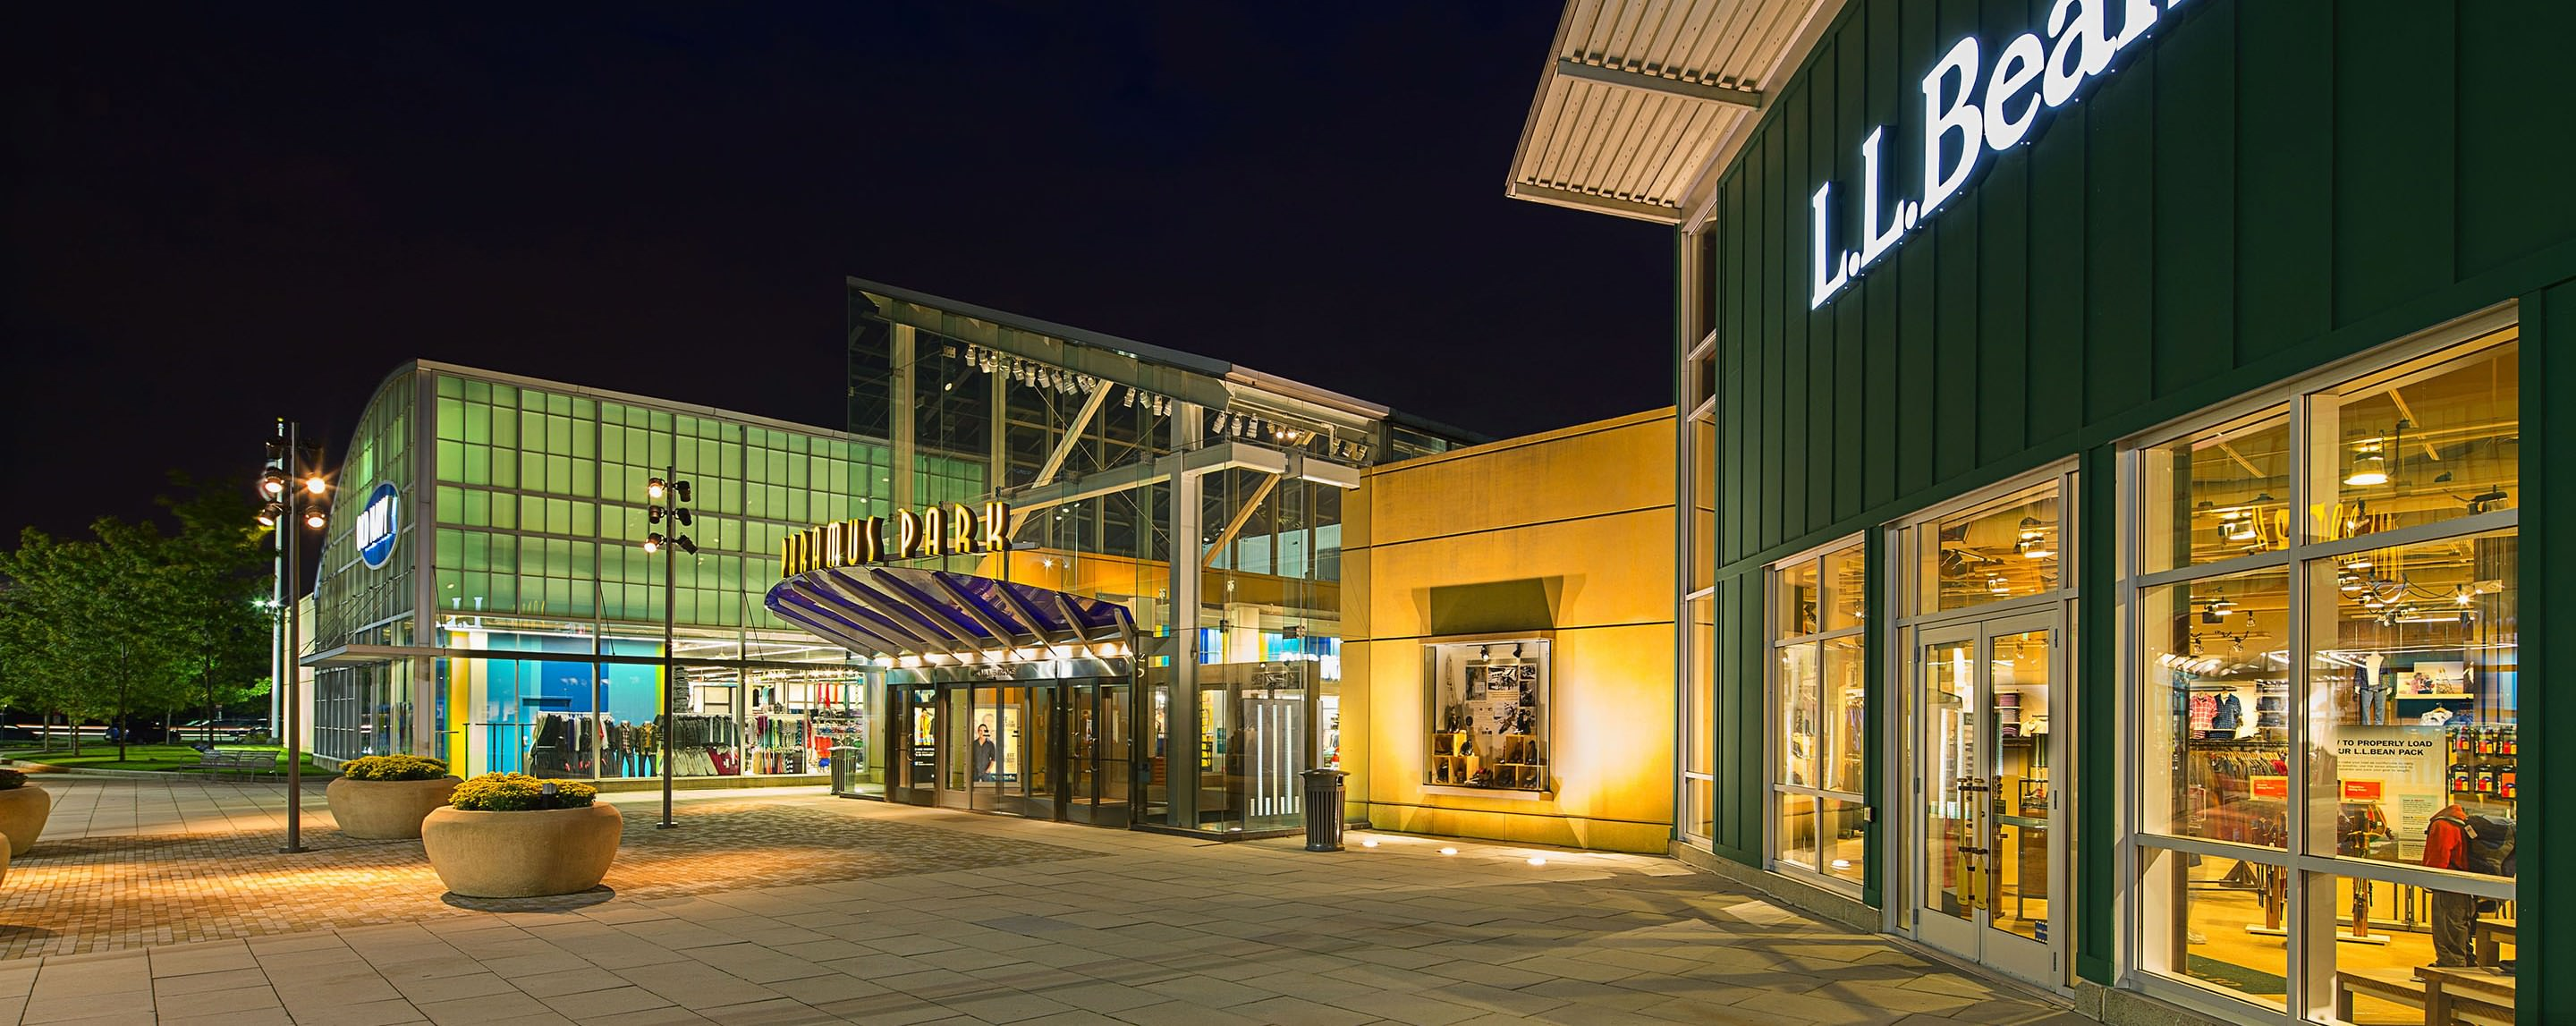 The sidewalks in front of the stores of Paramus Park appear to be empty at night time.